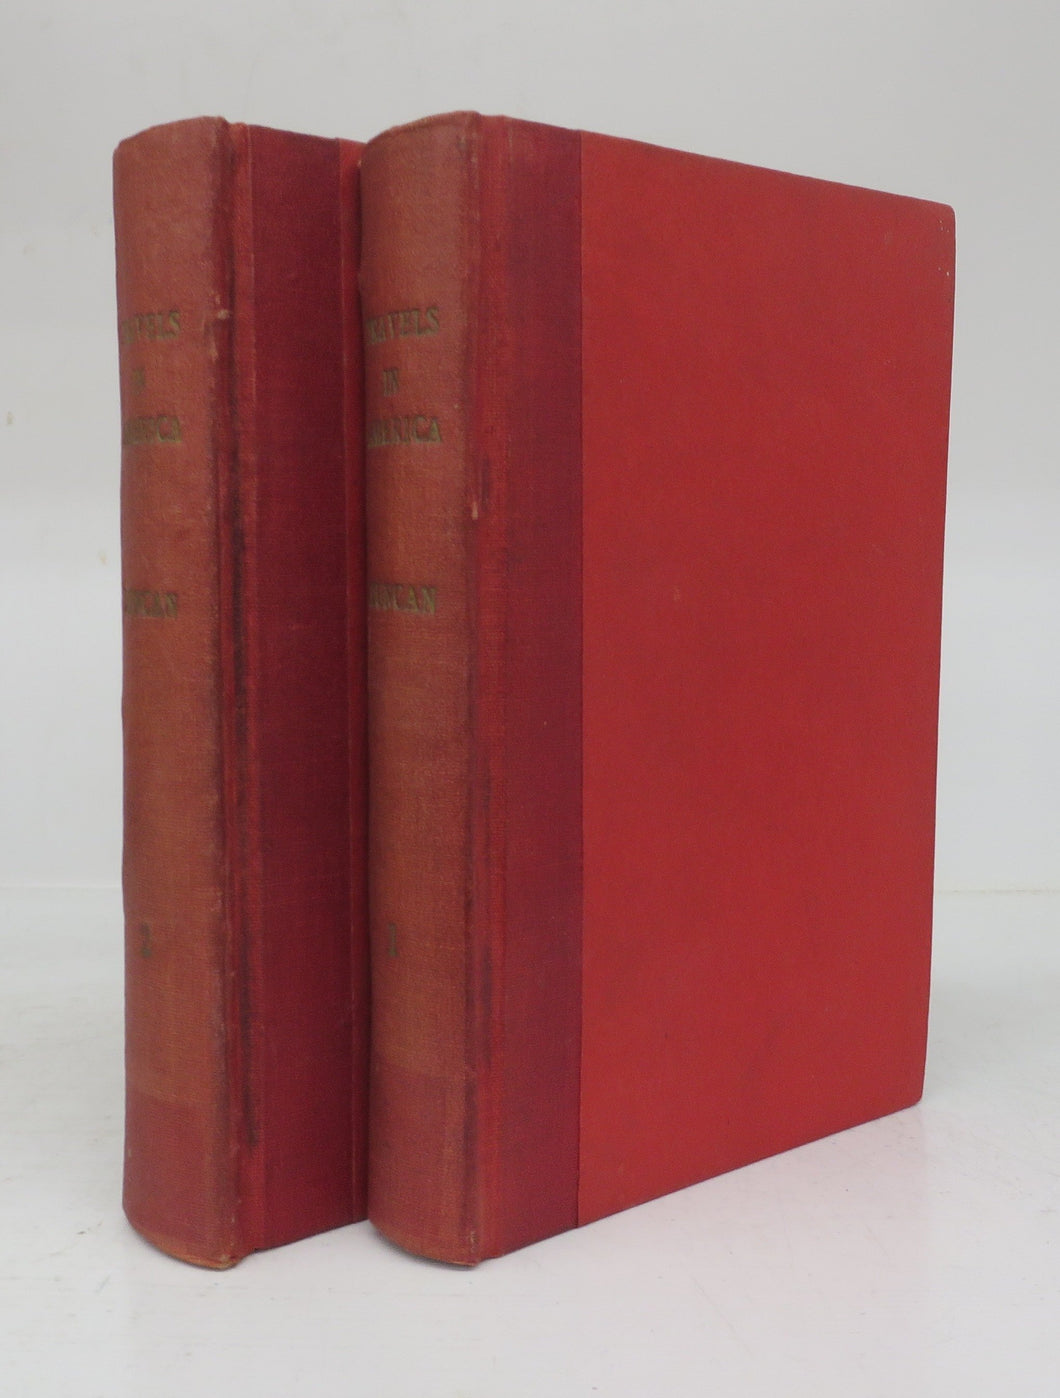 Travels Through Part of the United States and Canada in 1818 and 1819. In Two Volumes